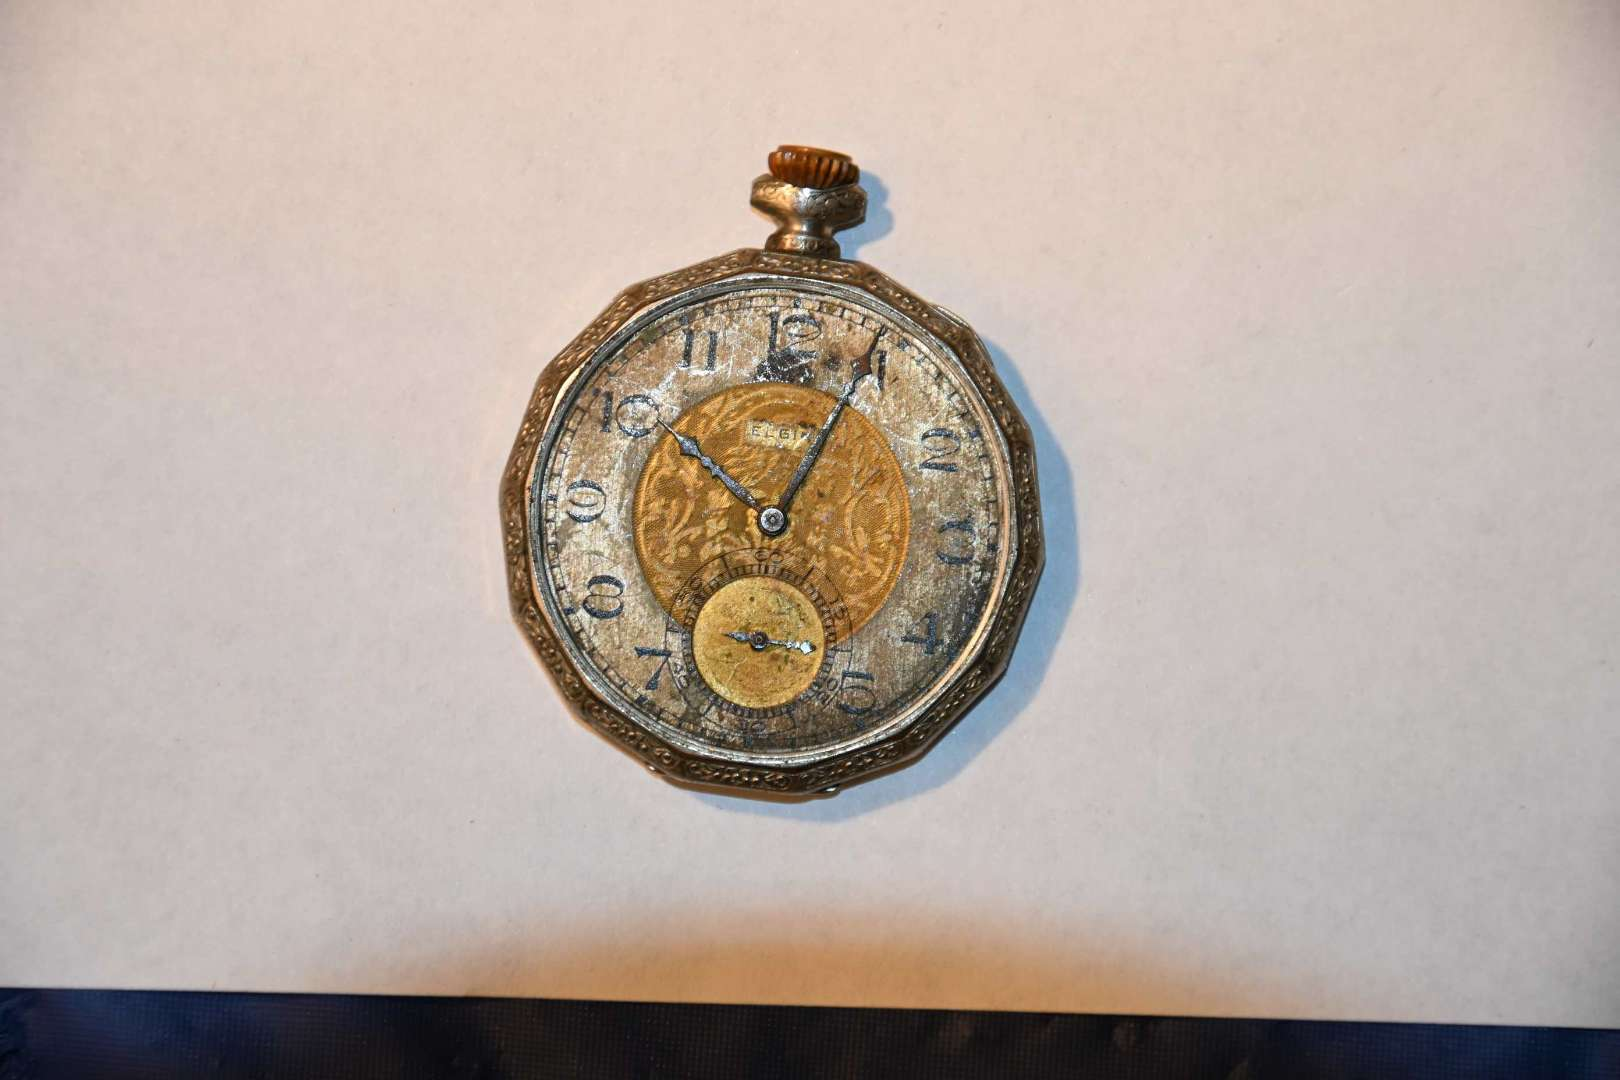 Lot # 57 ELGIN pocketwatch with subsecond hand